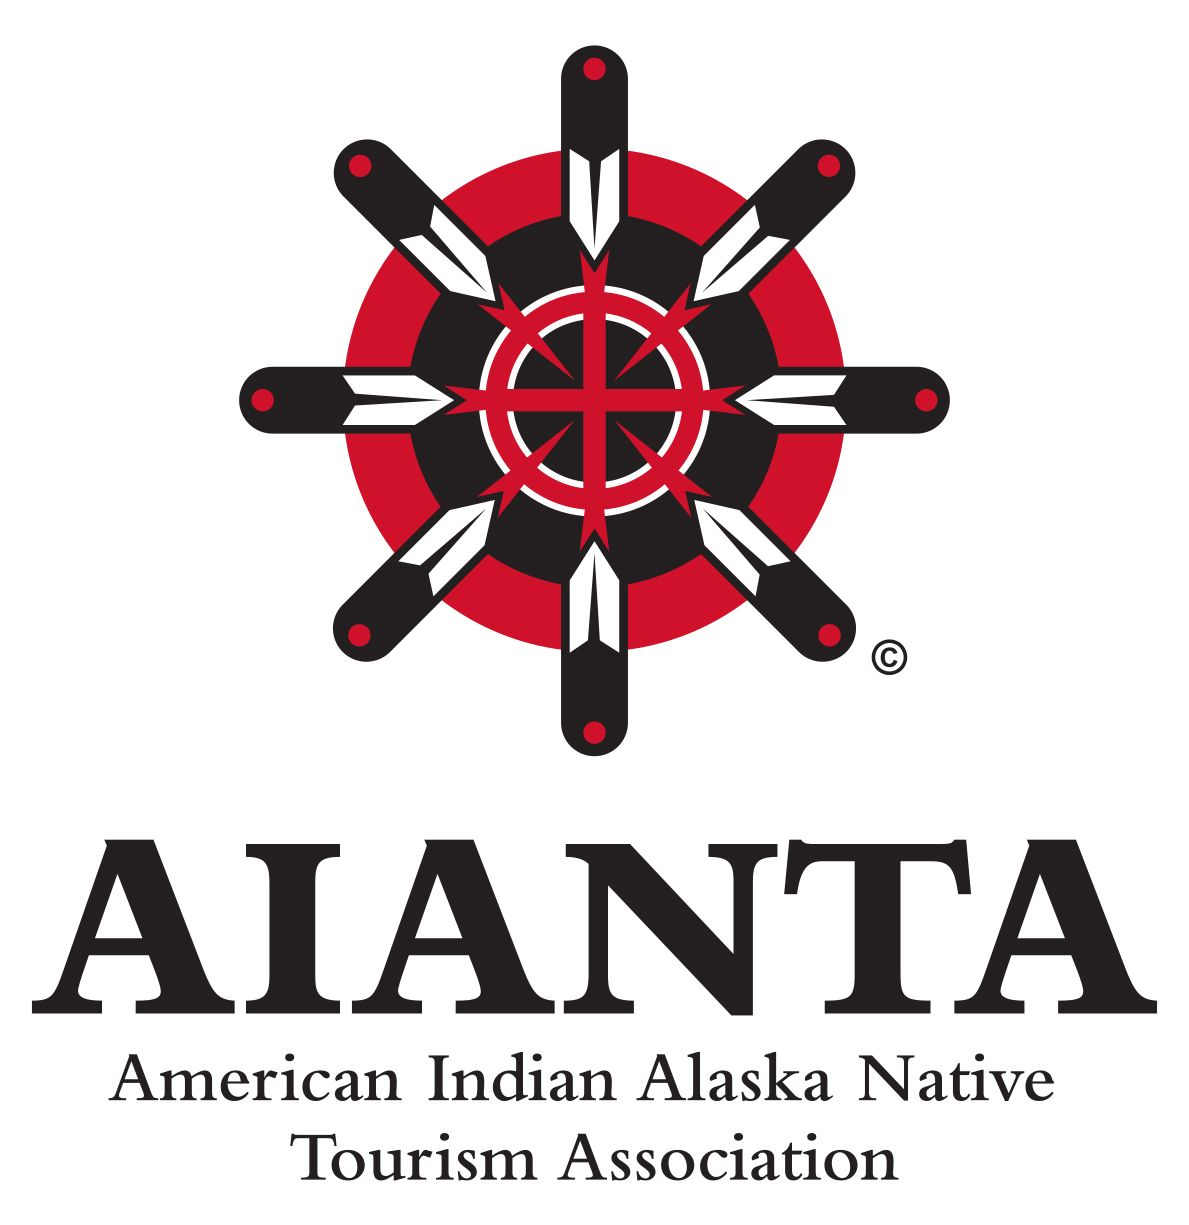 American Indian Alaskan Native Tourism Association